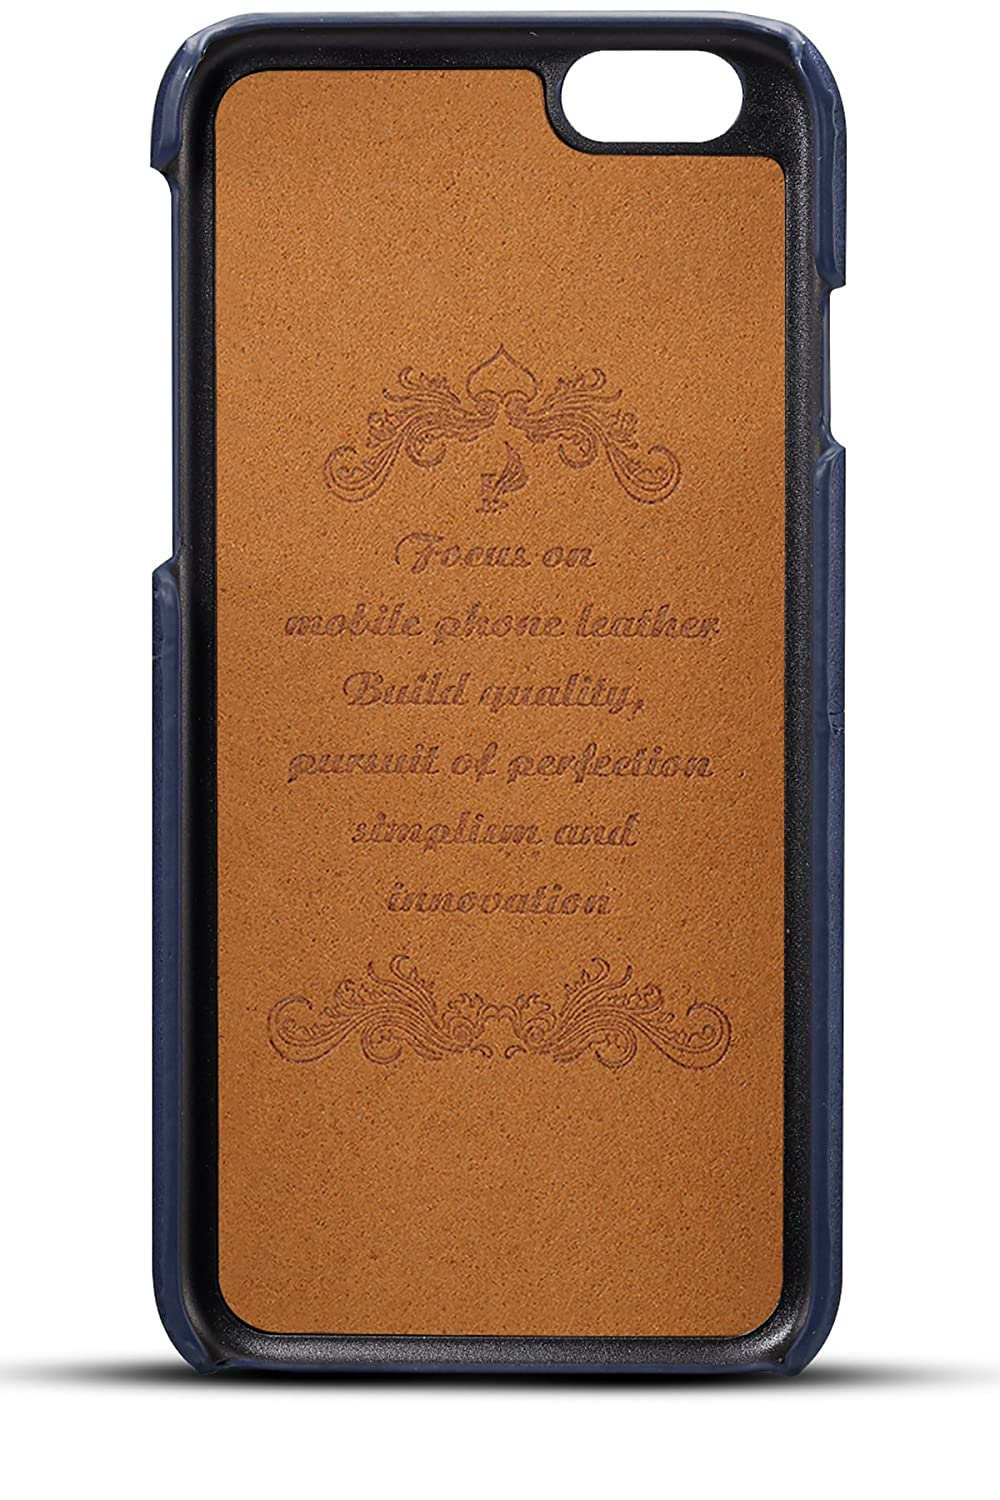 iPhone 6S Plus//6 Plus Wallet Phone Card Holder Case Slim Leather Back Cover